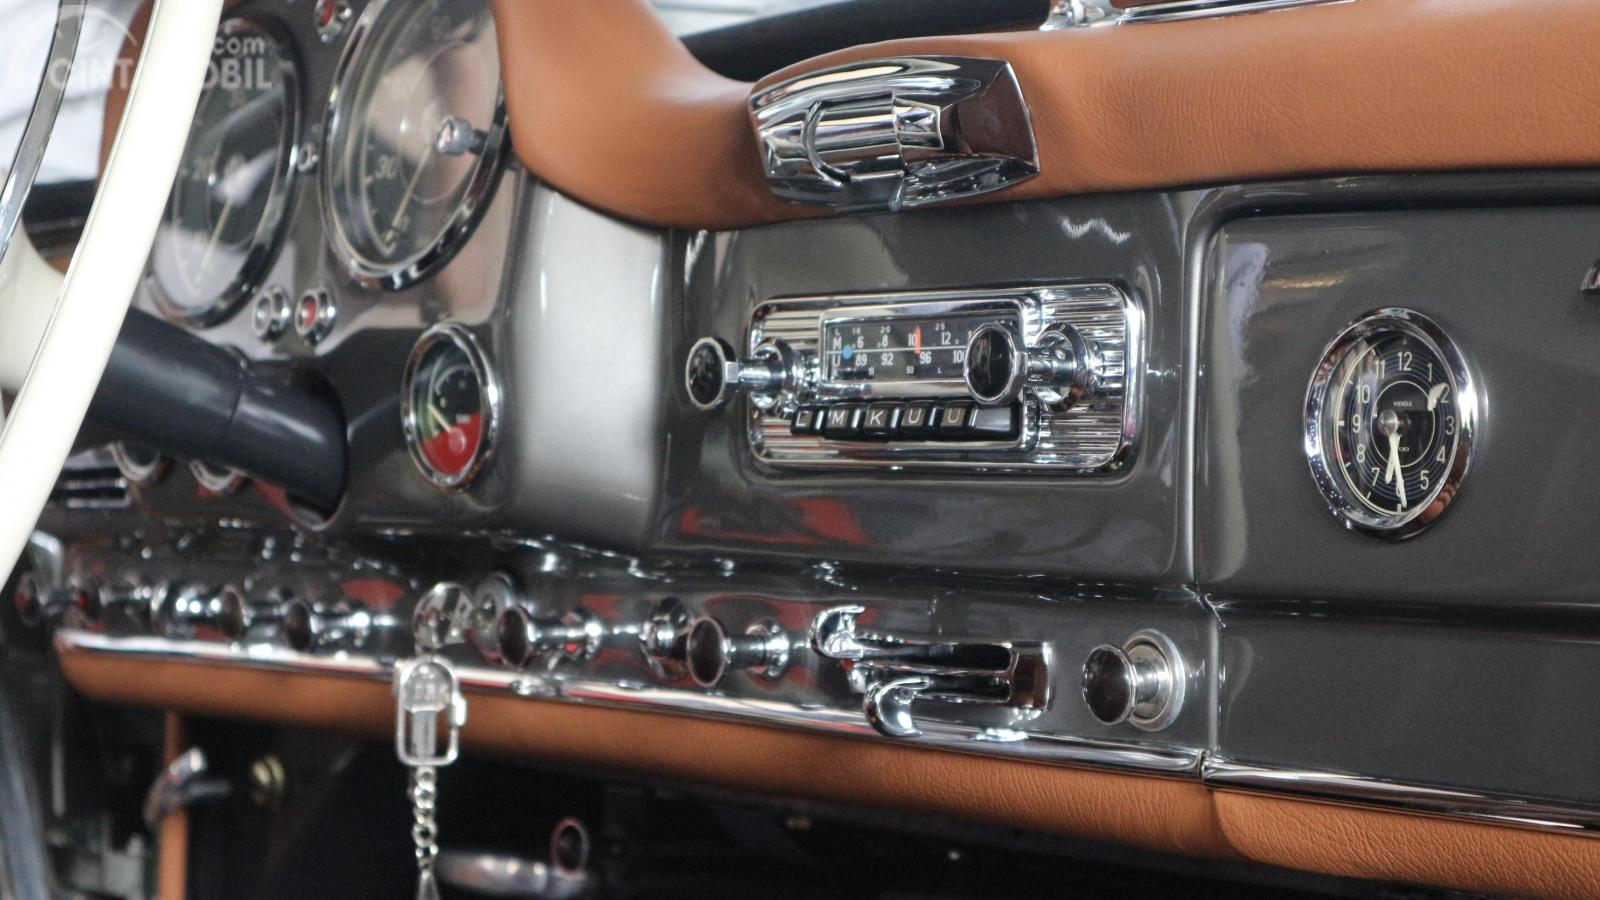 Foto Mercedes-Benz 190 SL 1956 dari sisi audio